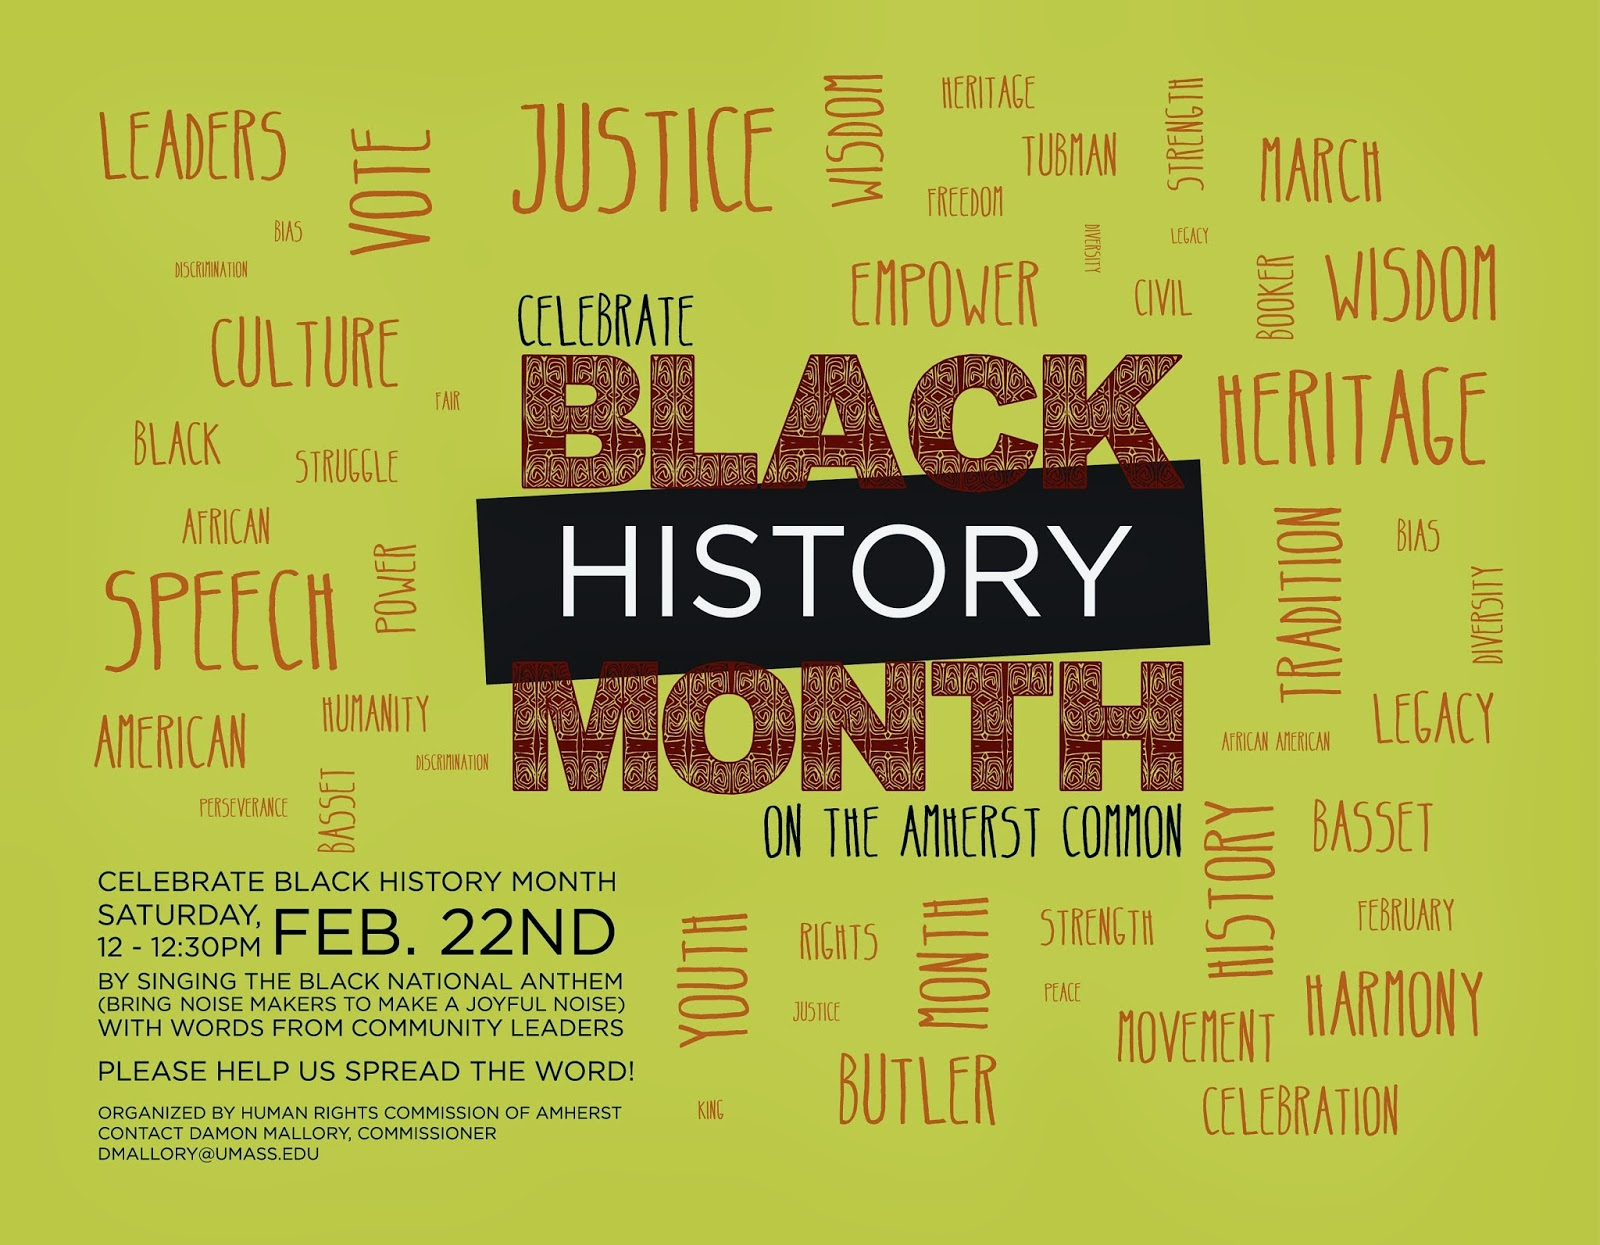 Celebrate The First Public Black History Month Event On Amherst Common Saturday February 22 2014 From 12 1230PM